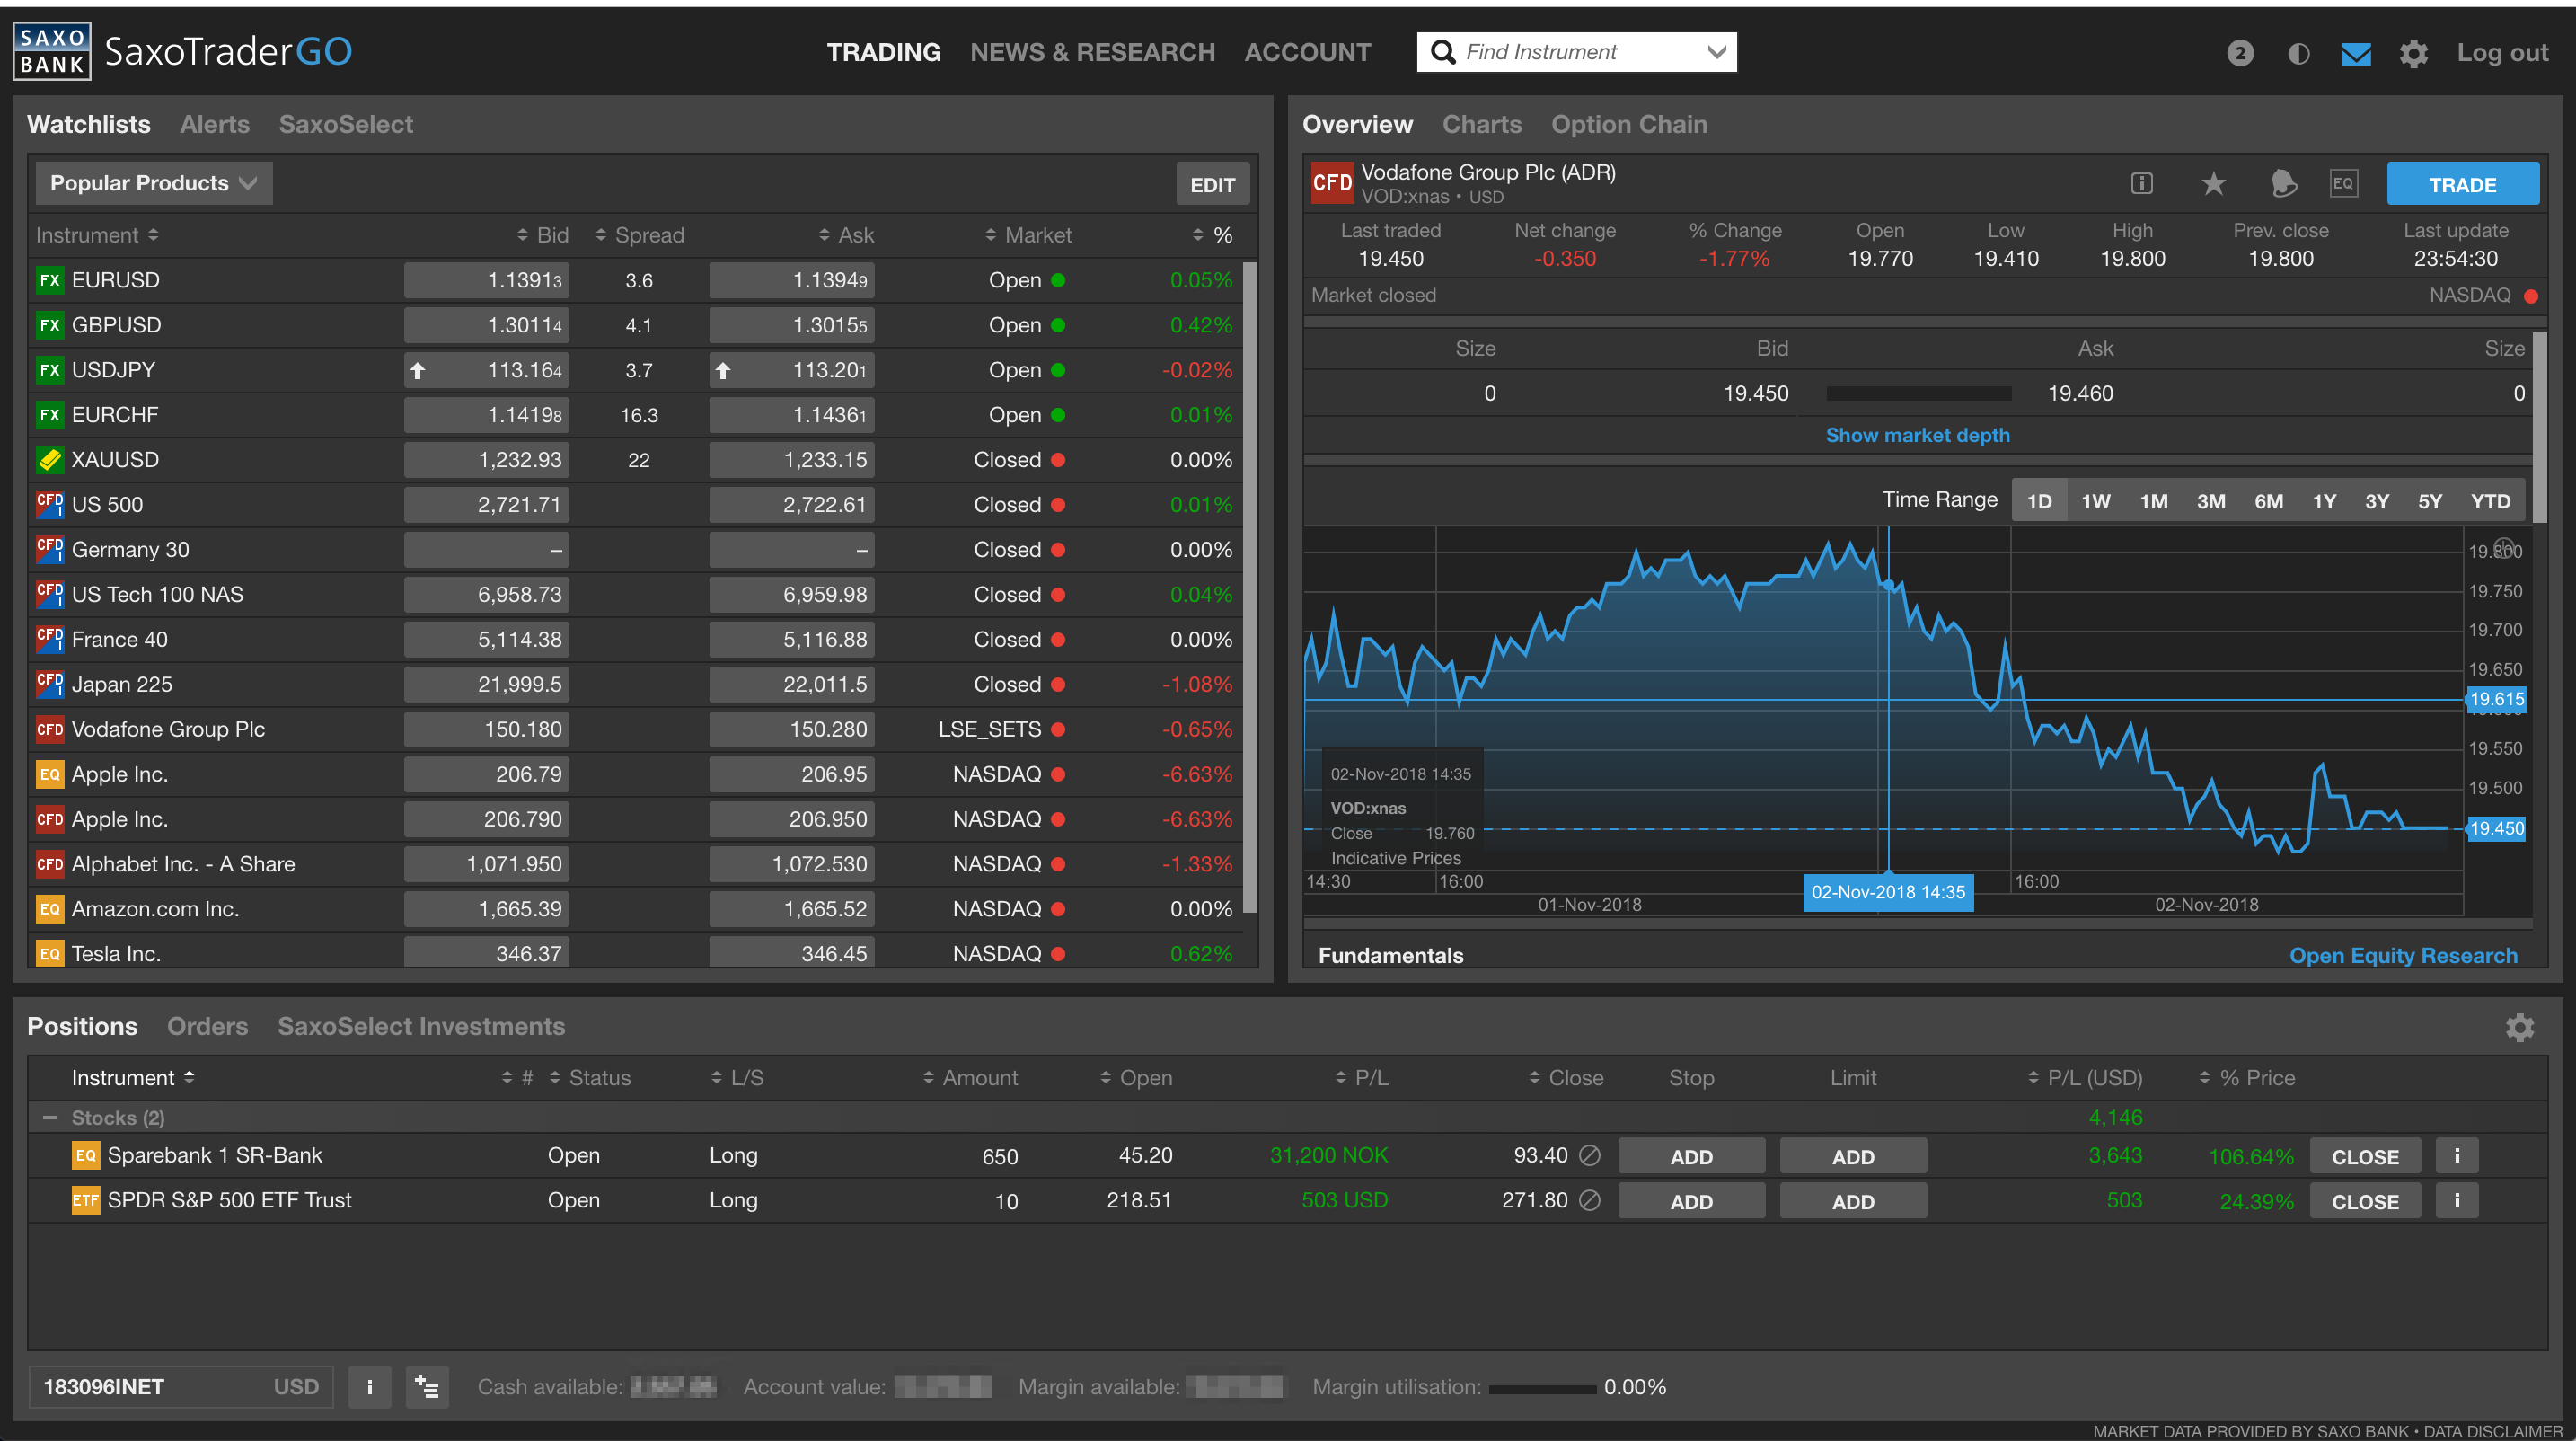 Web trading platform of Saxo Bank, a Swissquote alternative